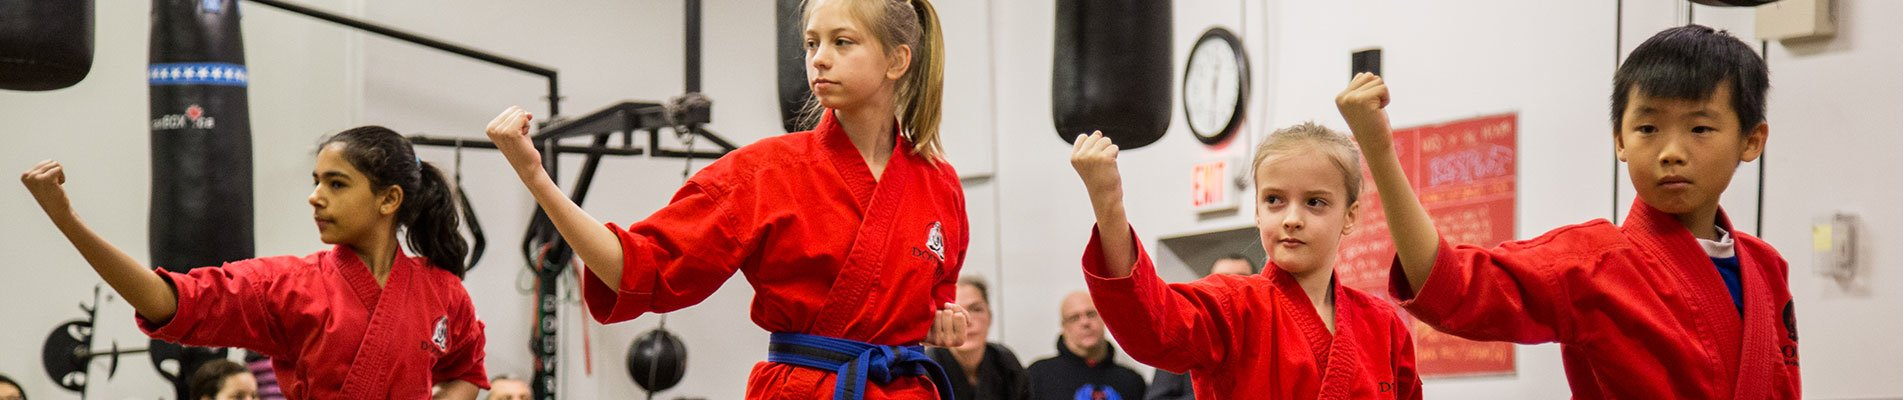 Douvris Martial Arts - Karate, Kickboxing, Fitness, Personal